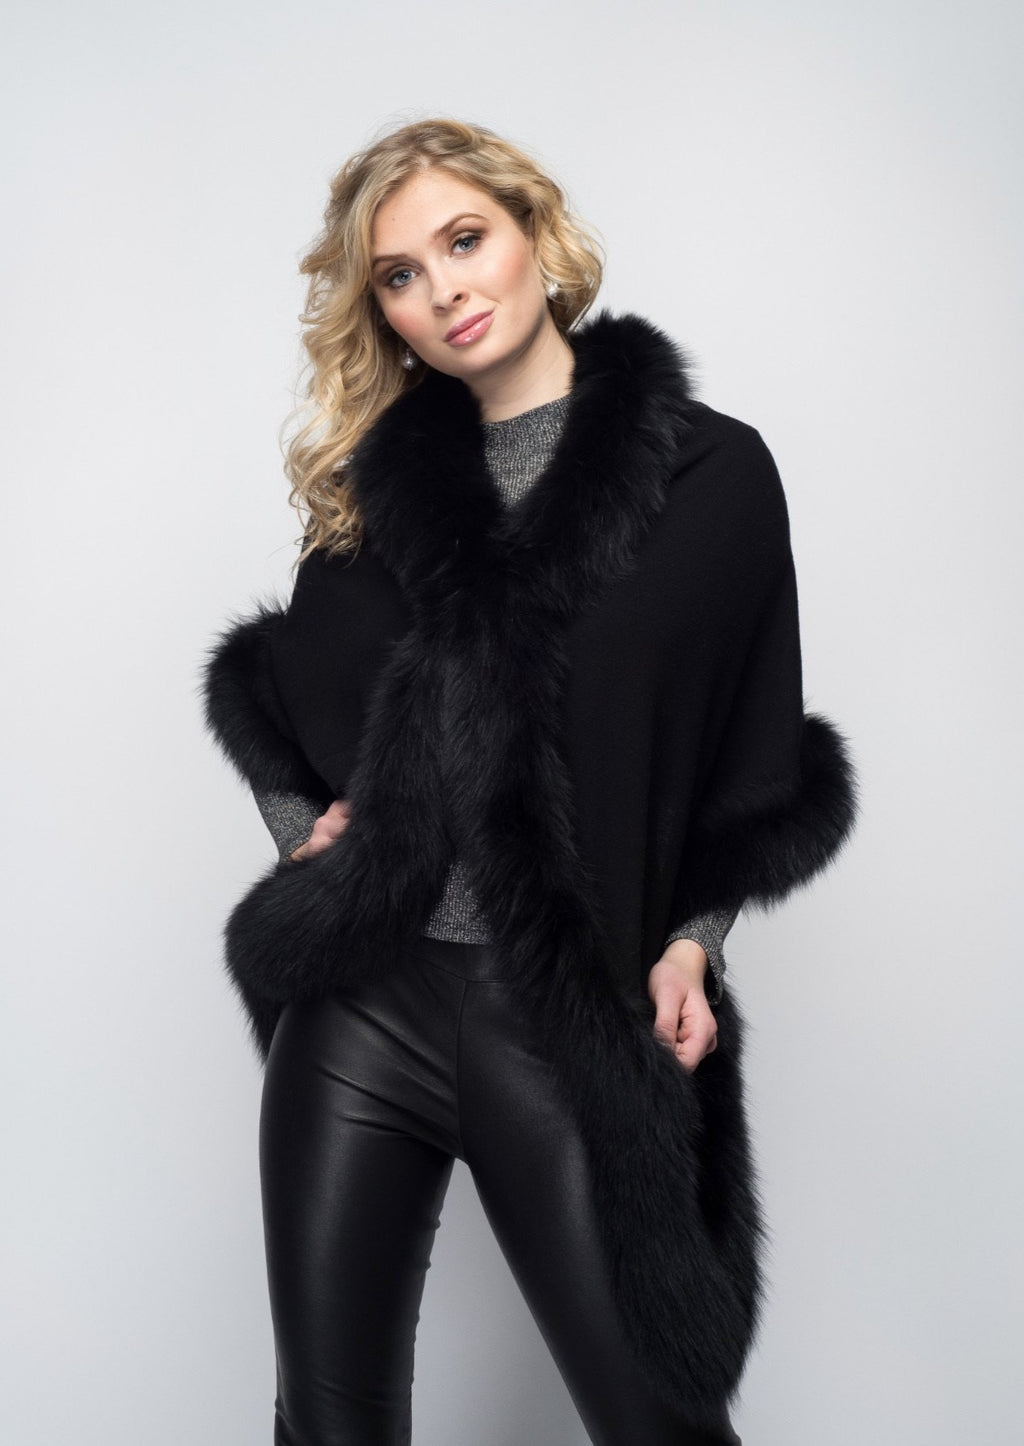 C&B Furs Cashmere & Full Fox Wrap in Black with Clasp